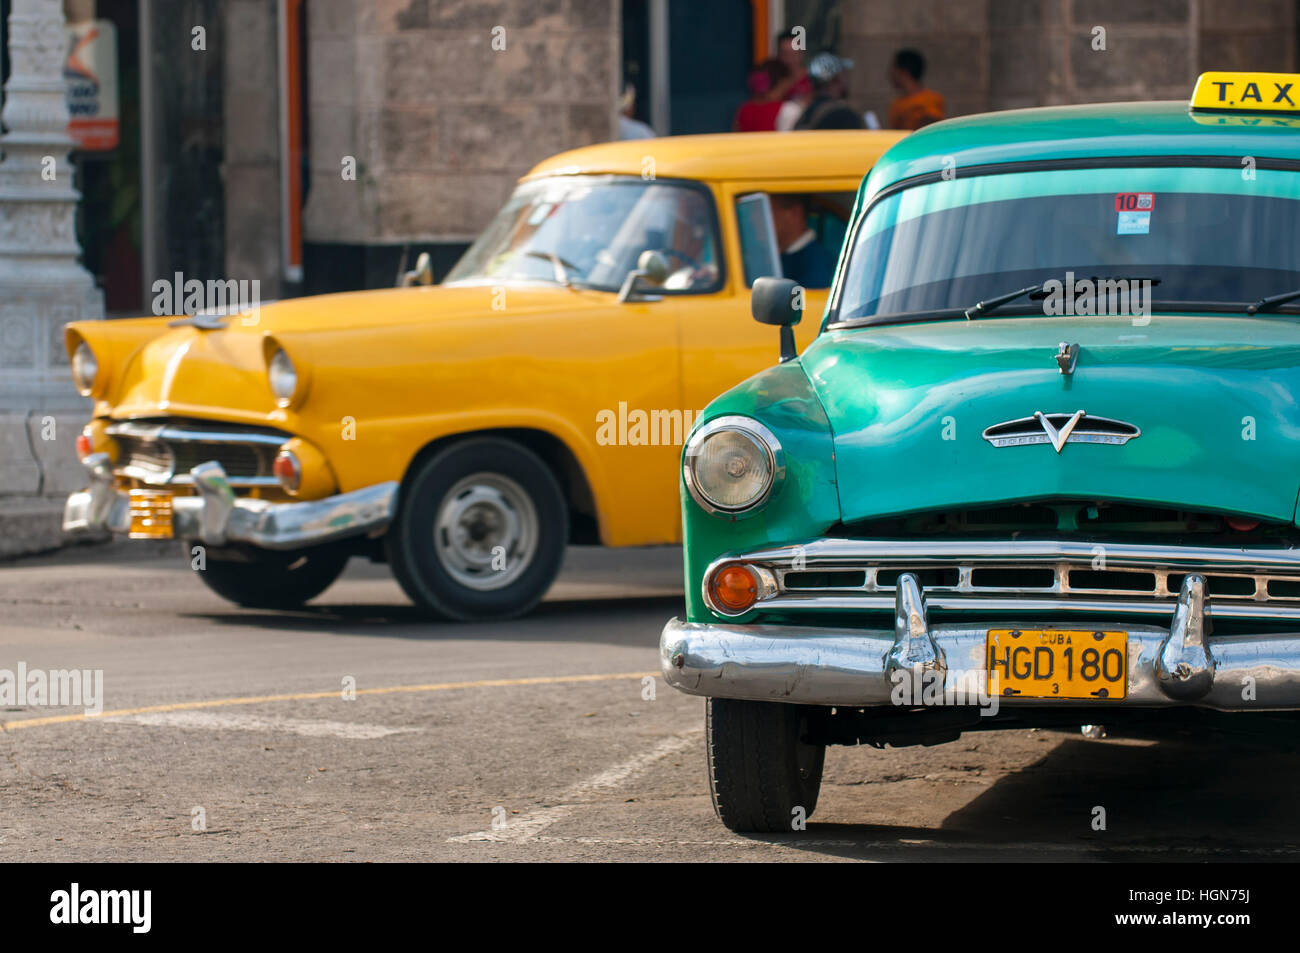 HAVANA - JUNE 13, 2011: Classic American taxi cars, symbols of the historical city, pass on a street in the Centro - Stock Image